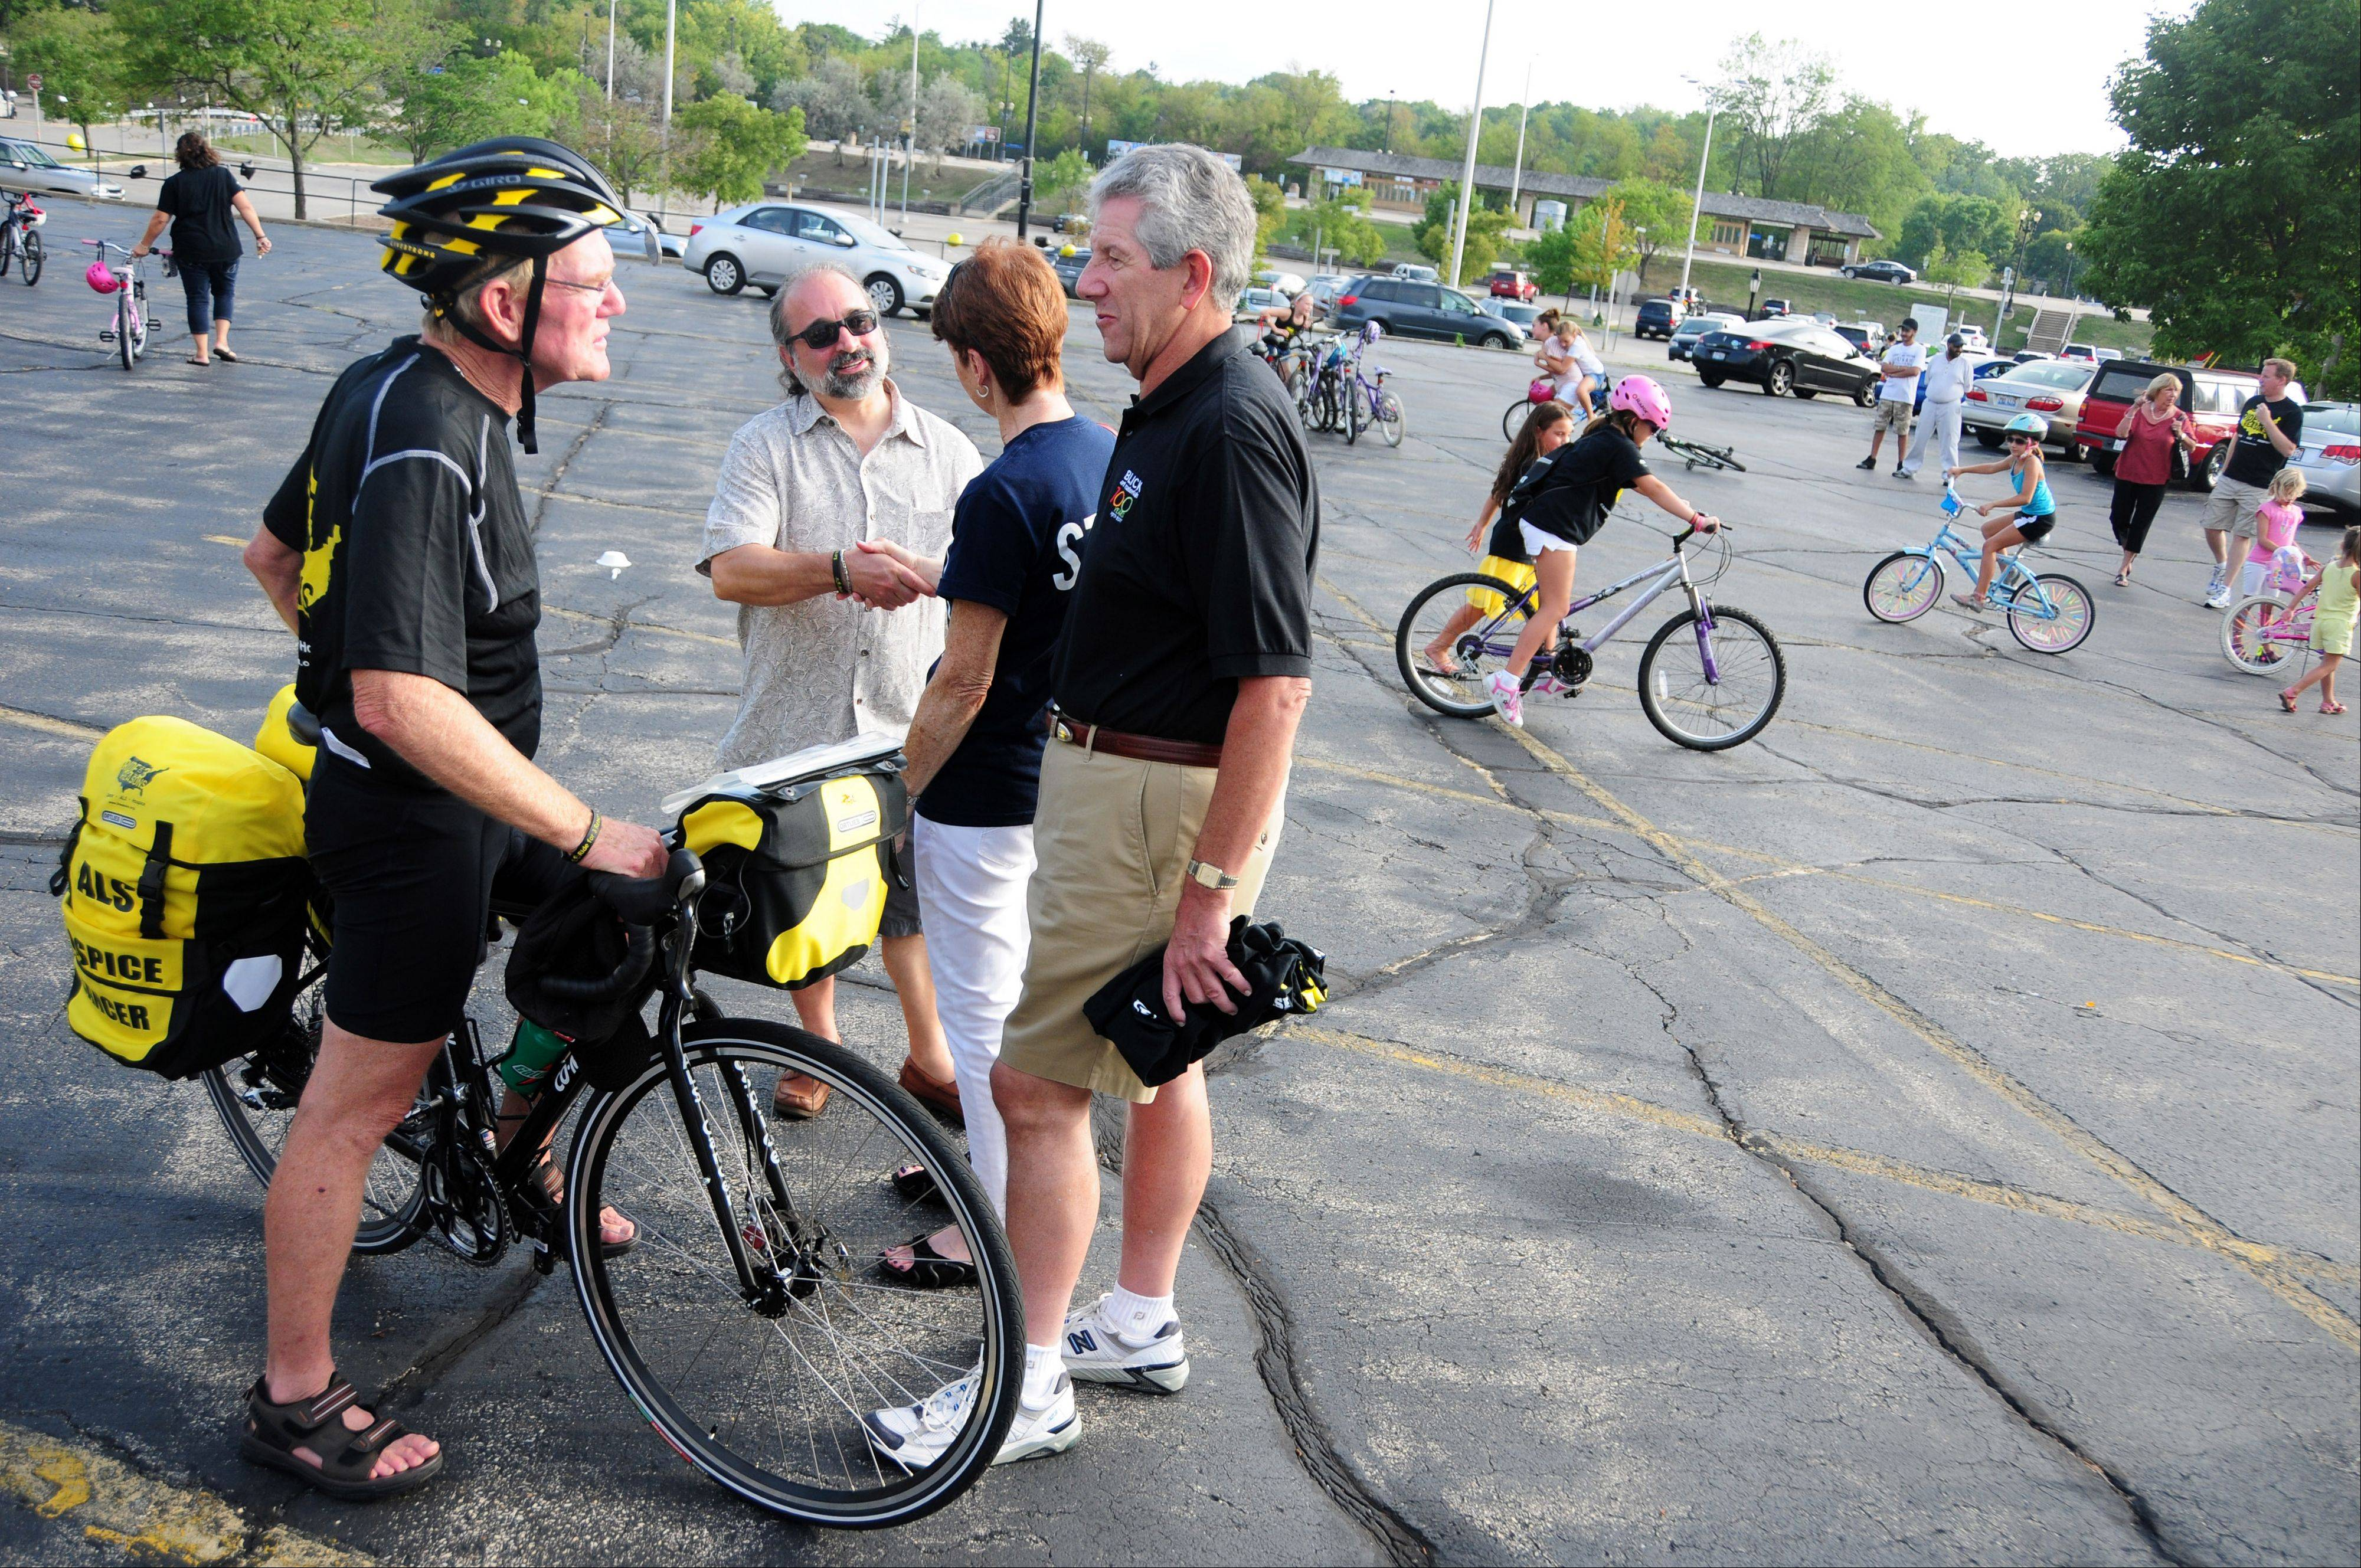 Barrington resident Bob Lee, 70, chats with friends while kids ride around the parking lot Sunday before embarking on the a bike ride around the perimeter of the United States to raise money for cancer research, ALS (Lou Gehrig's disease), and hospice education.